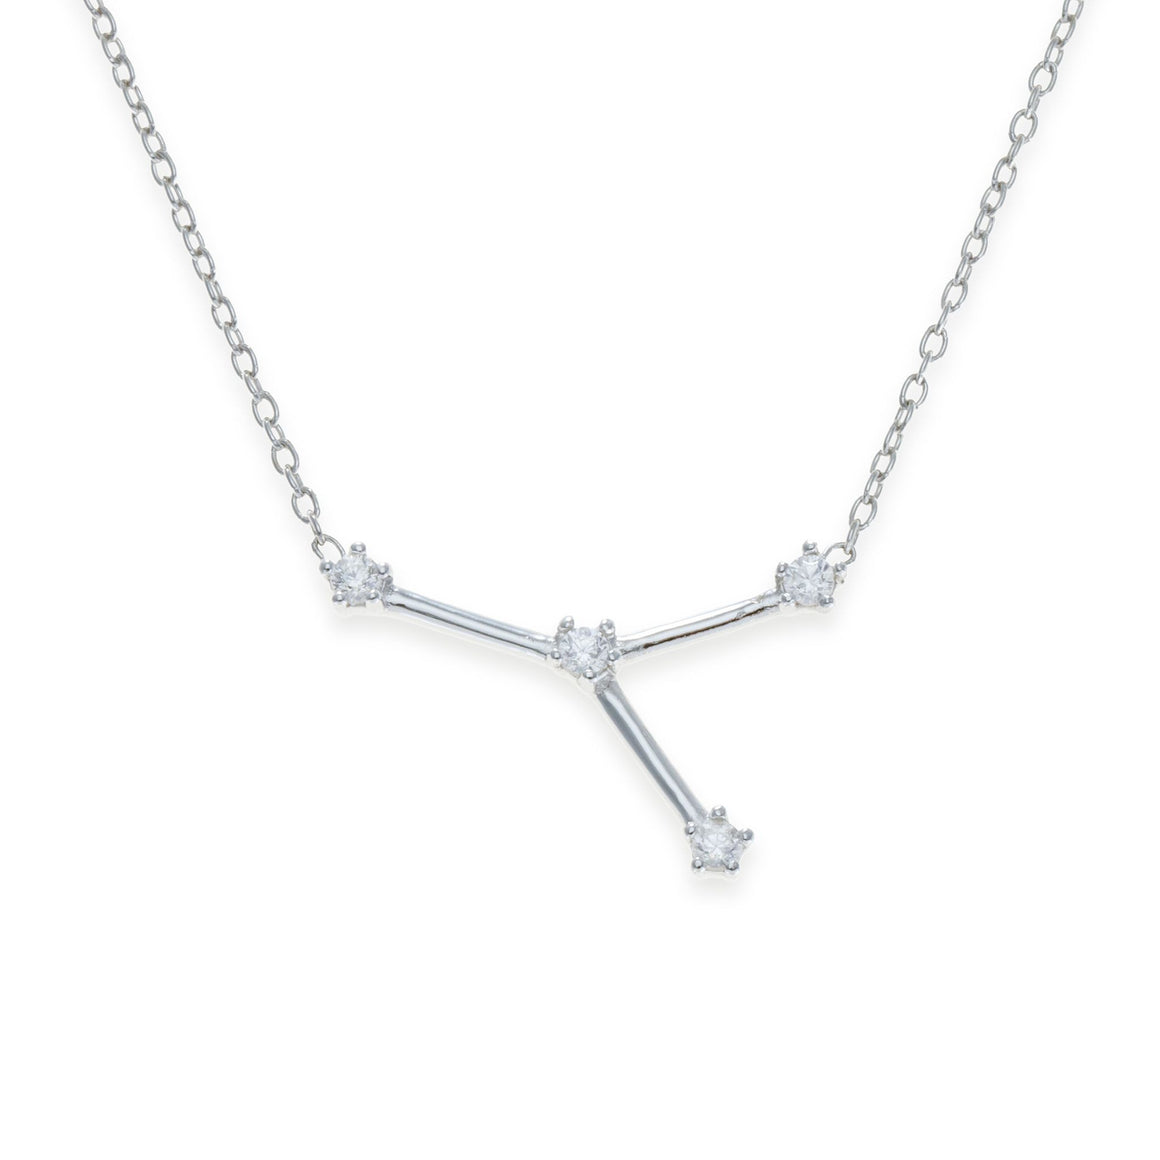 Sterling Silver Cancer Necklace | Kith & Kin | Wish Upon a Star Collection